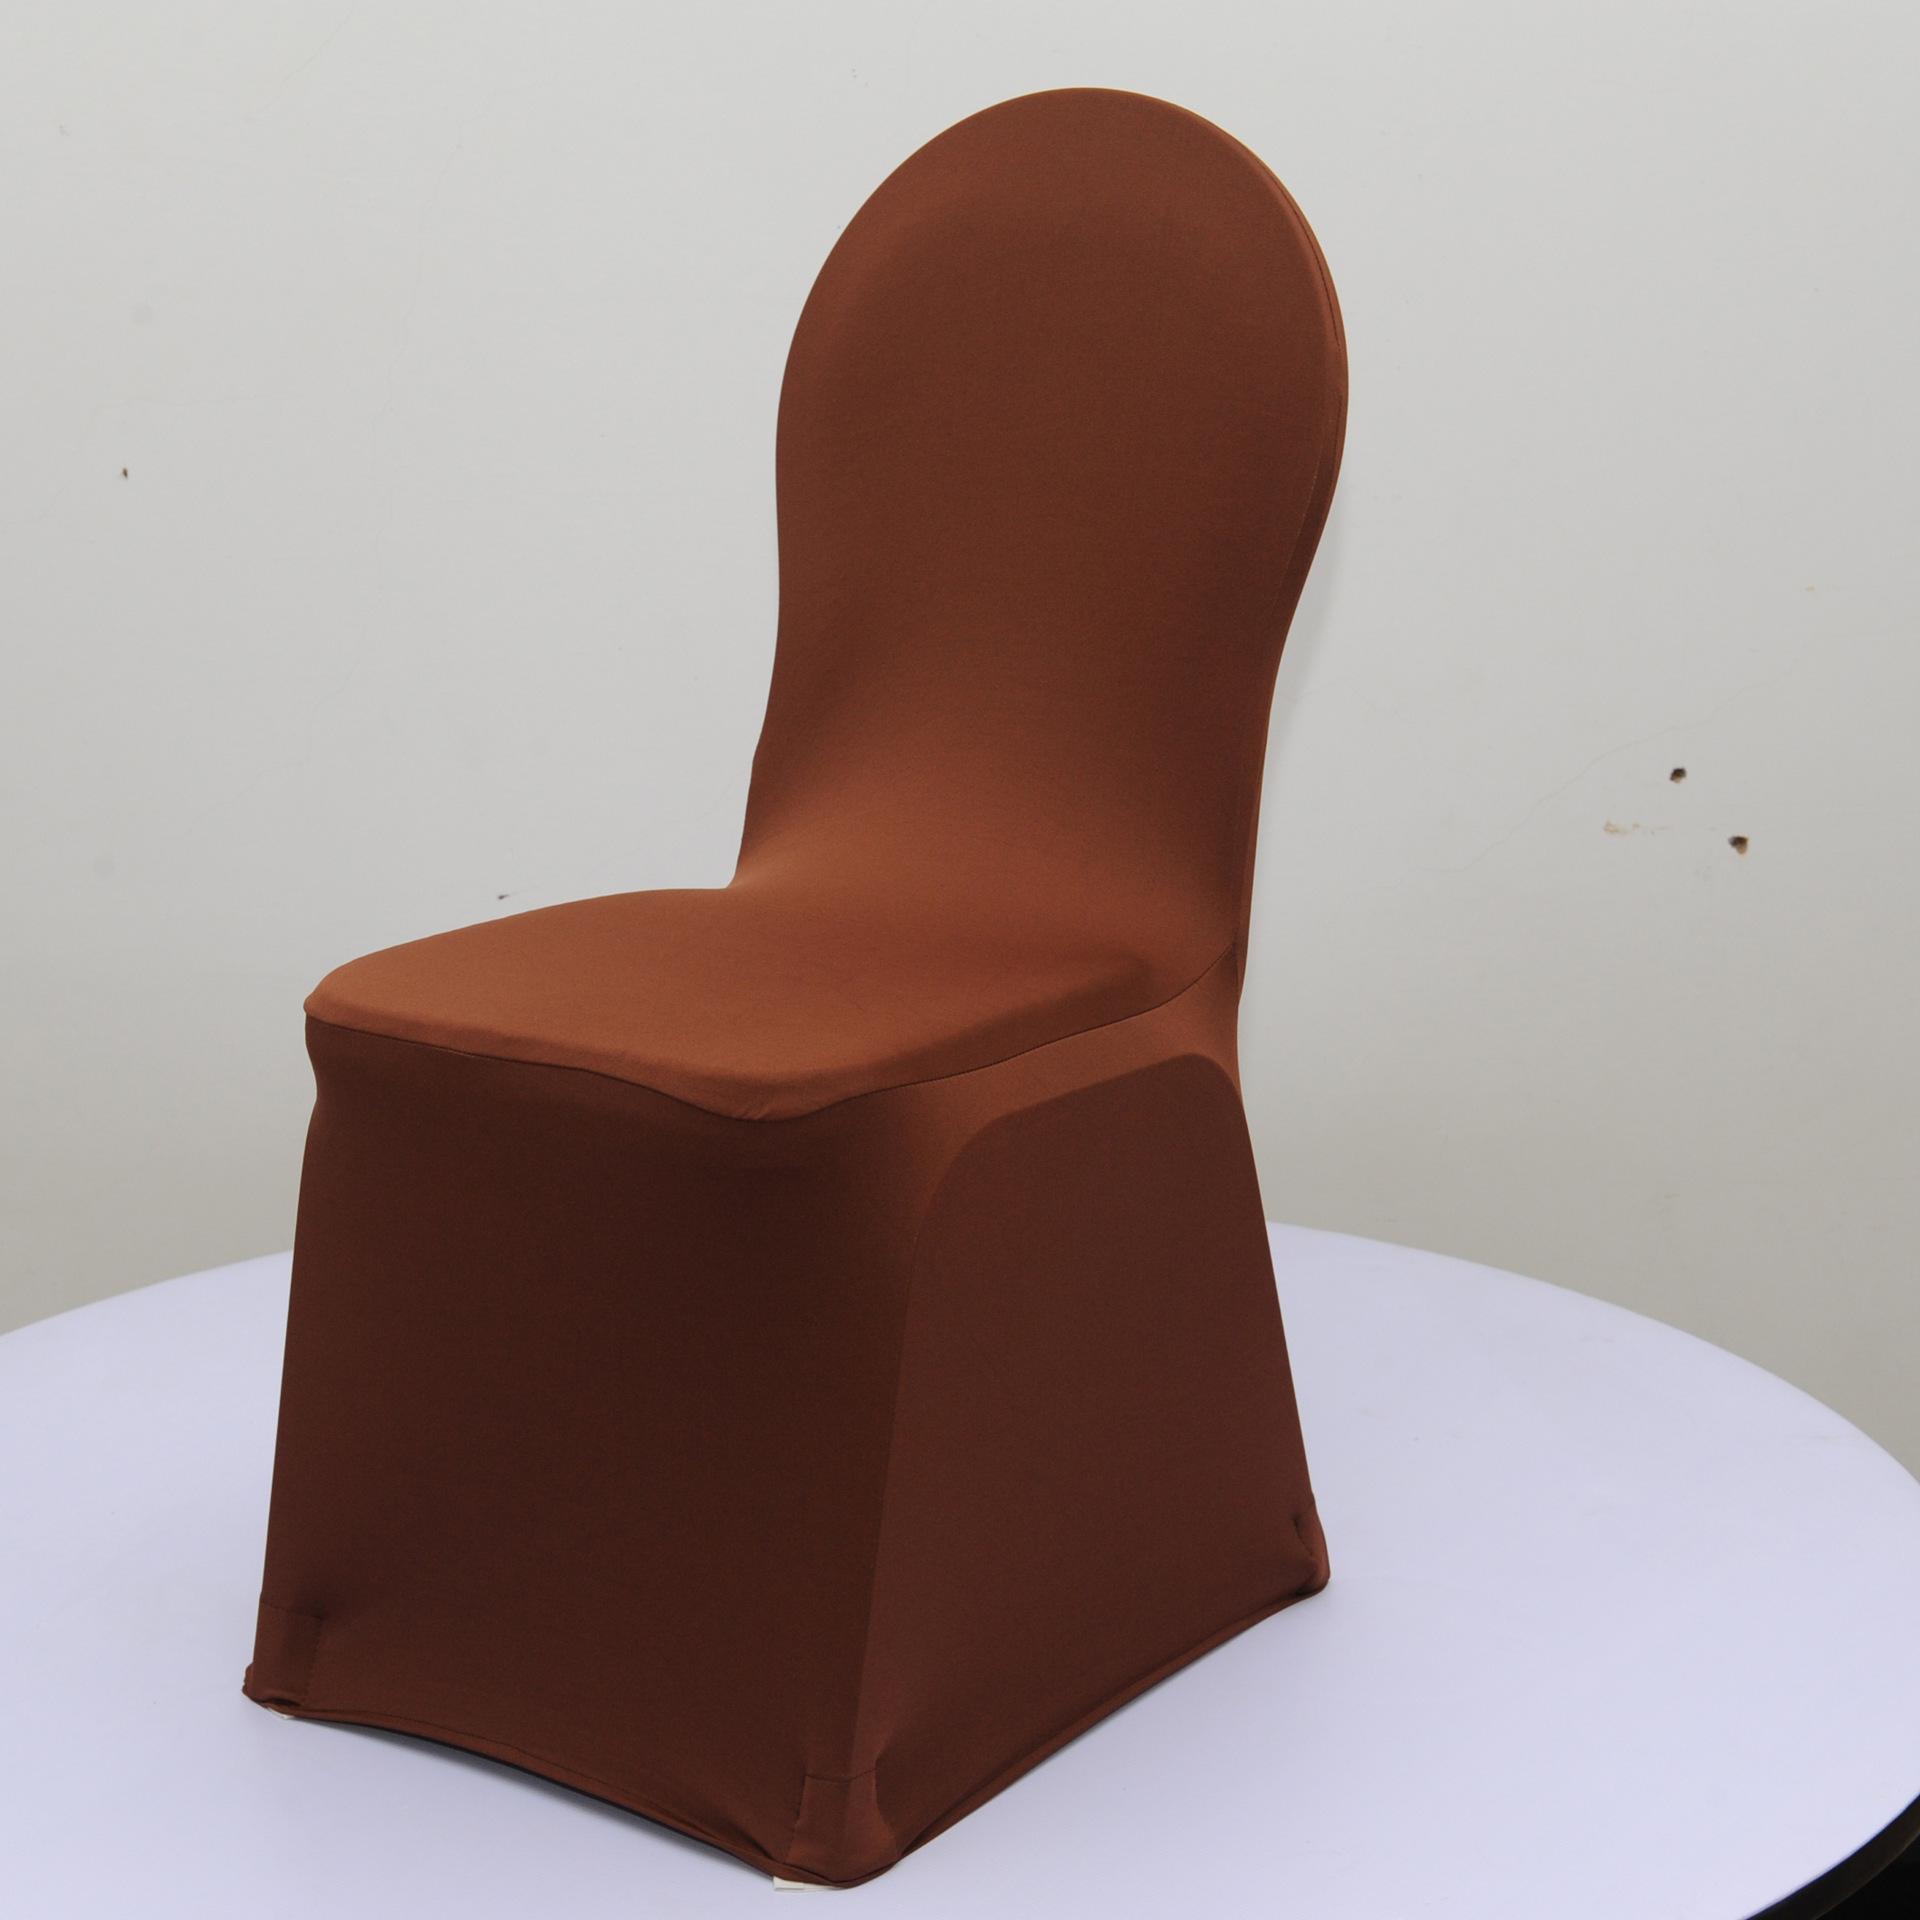 China Manufacturer Cheap Spandex Chair Cover Made In Buy Cheap